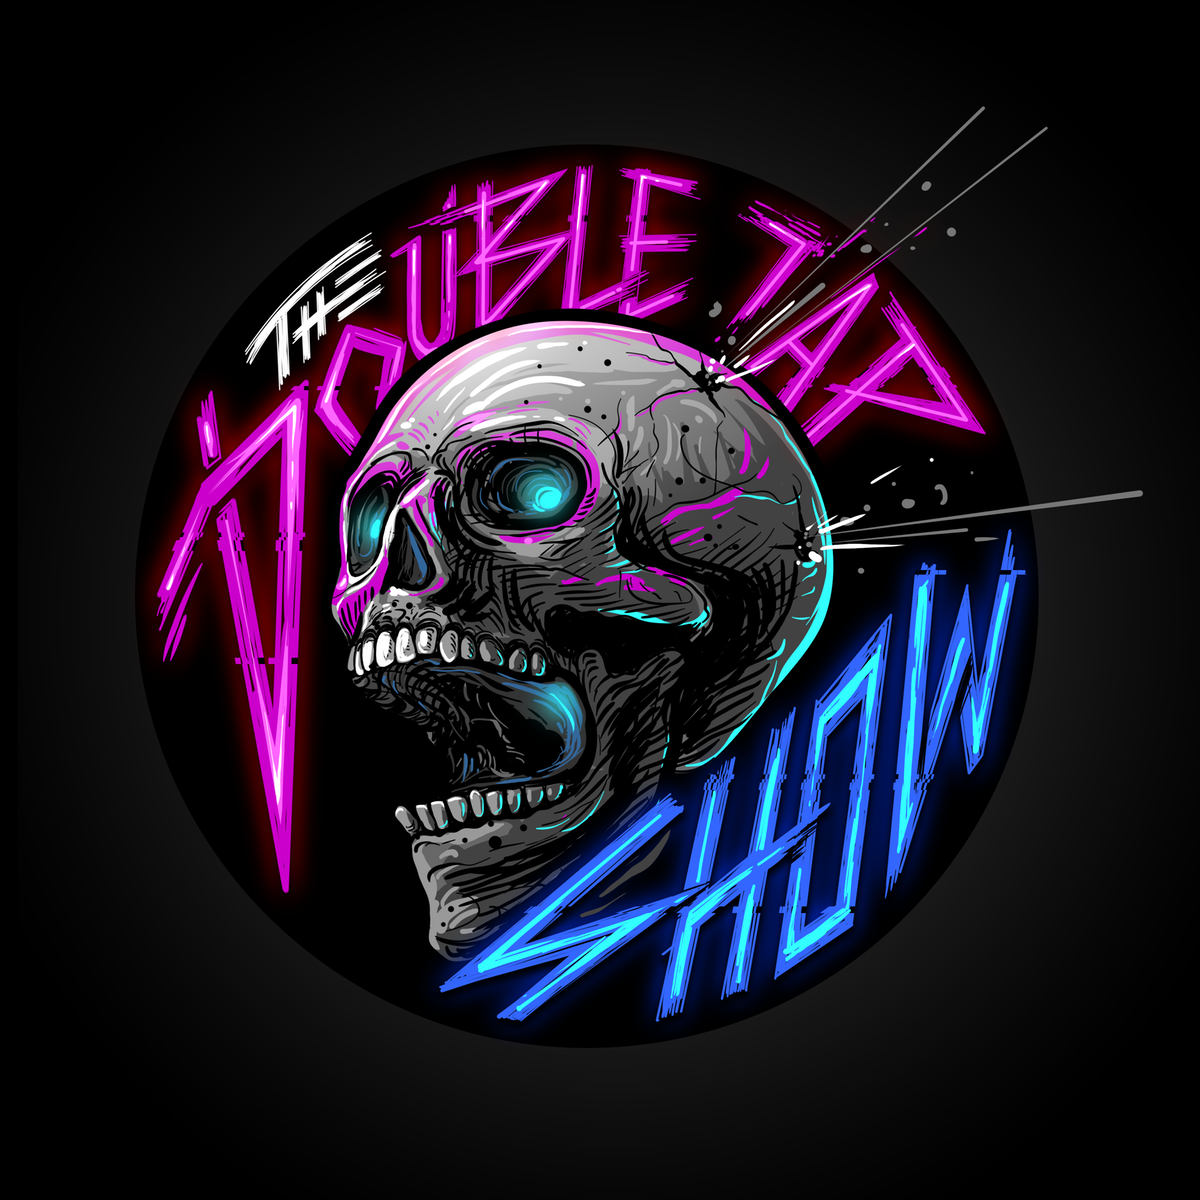 The double tap show